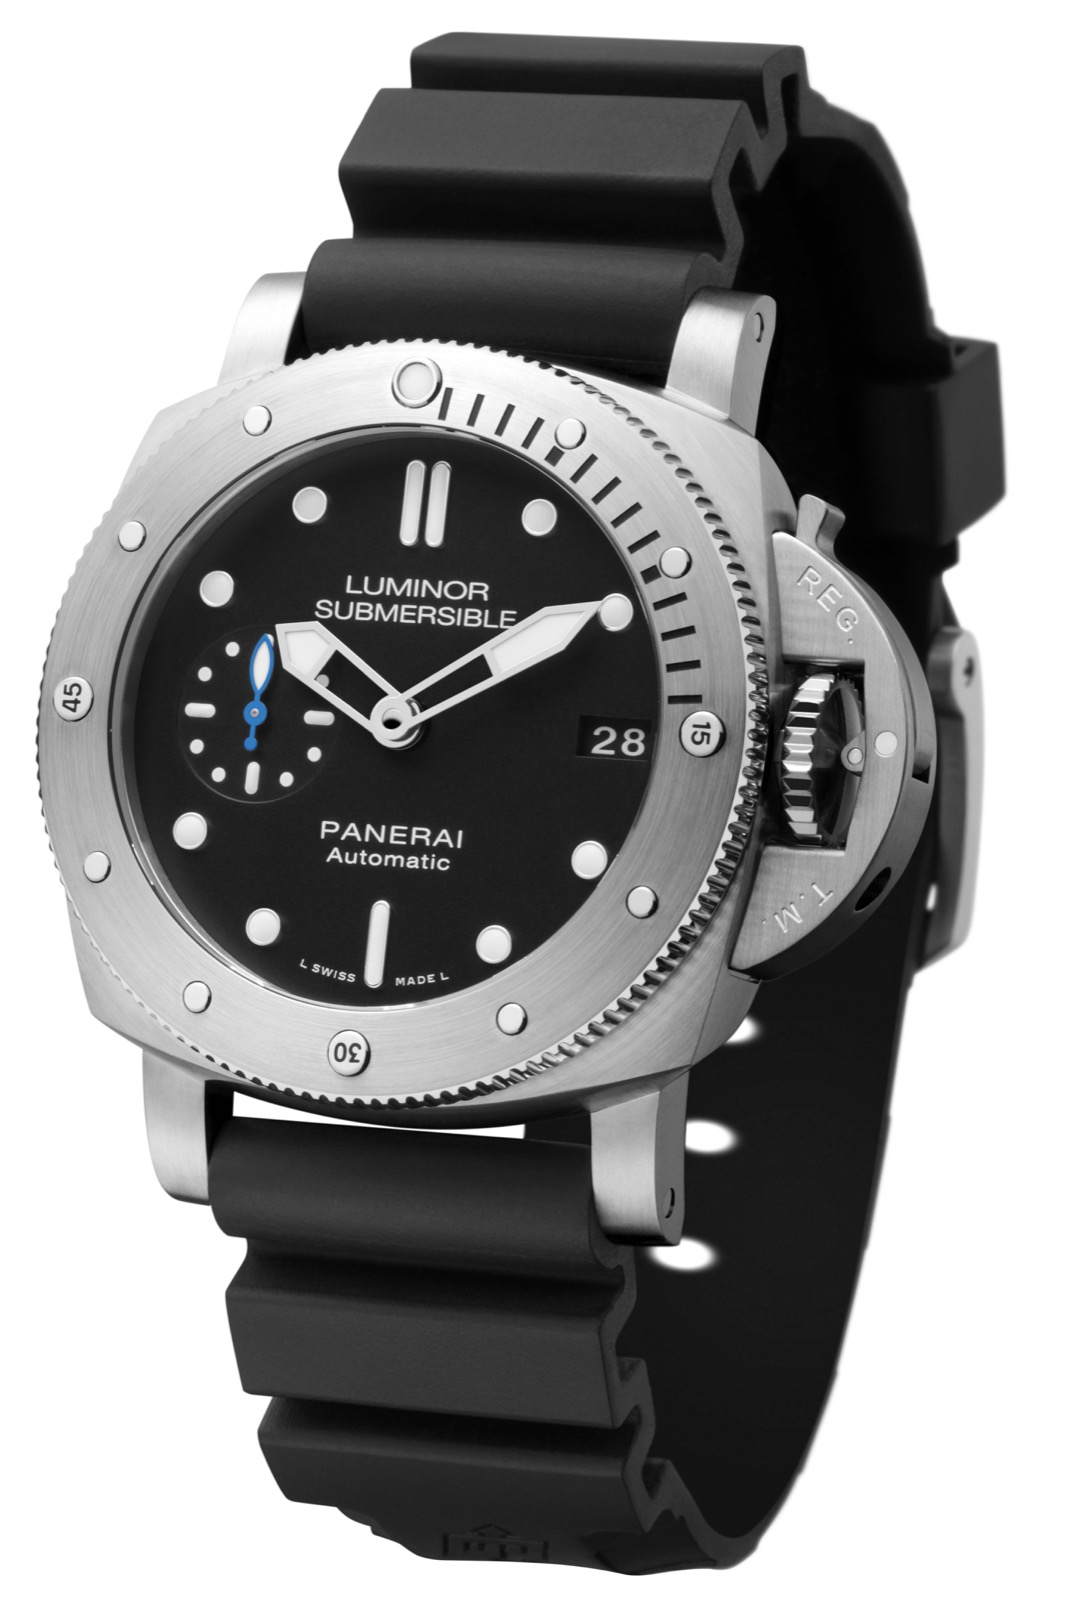 PANERAI LUMINOR SUBMERSIBLE 1950 3 DAYS AUTOMATIC ACCIAIO (PAM682) - 42mm